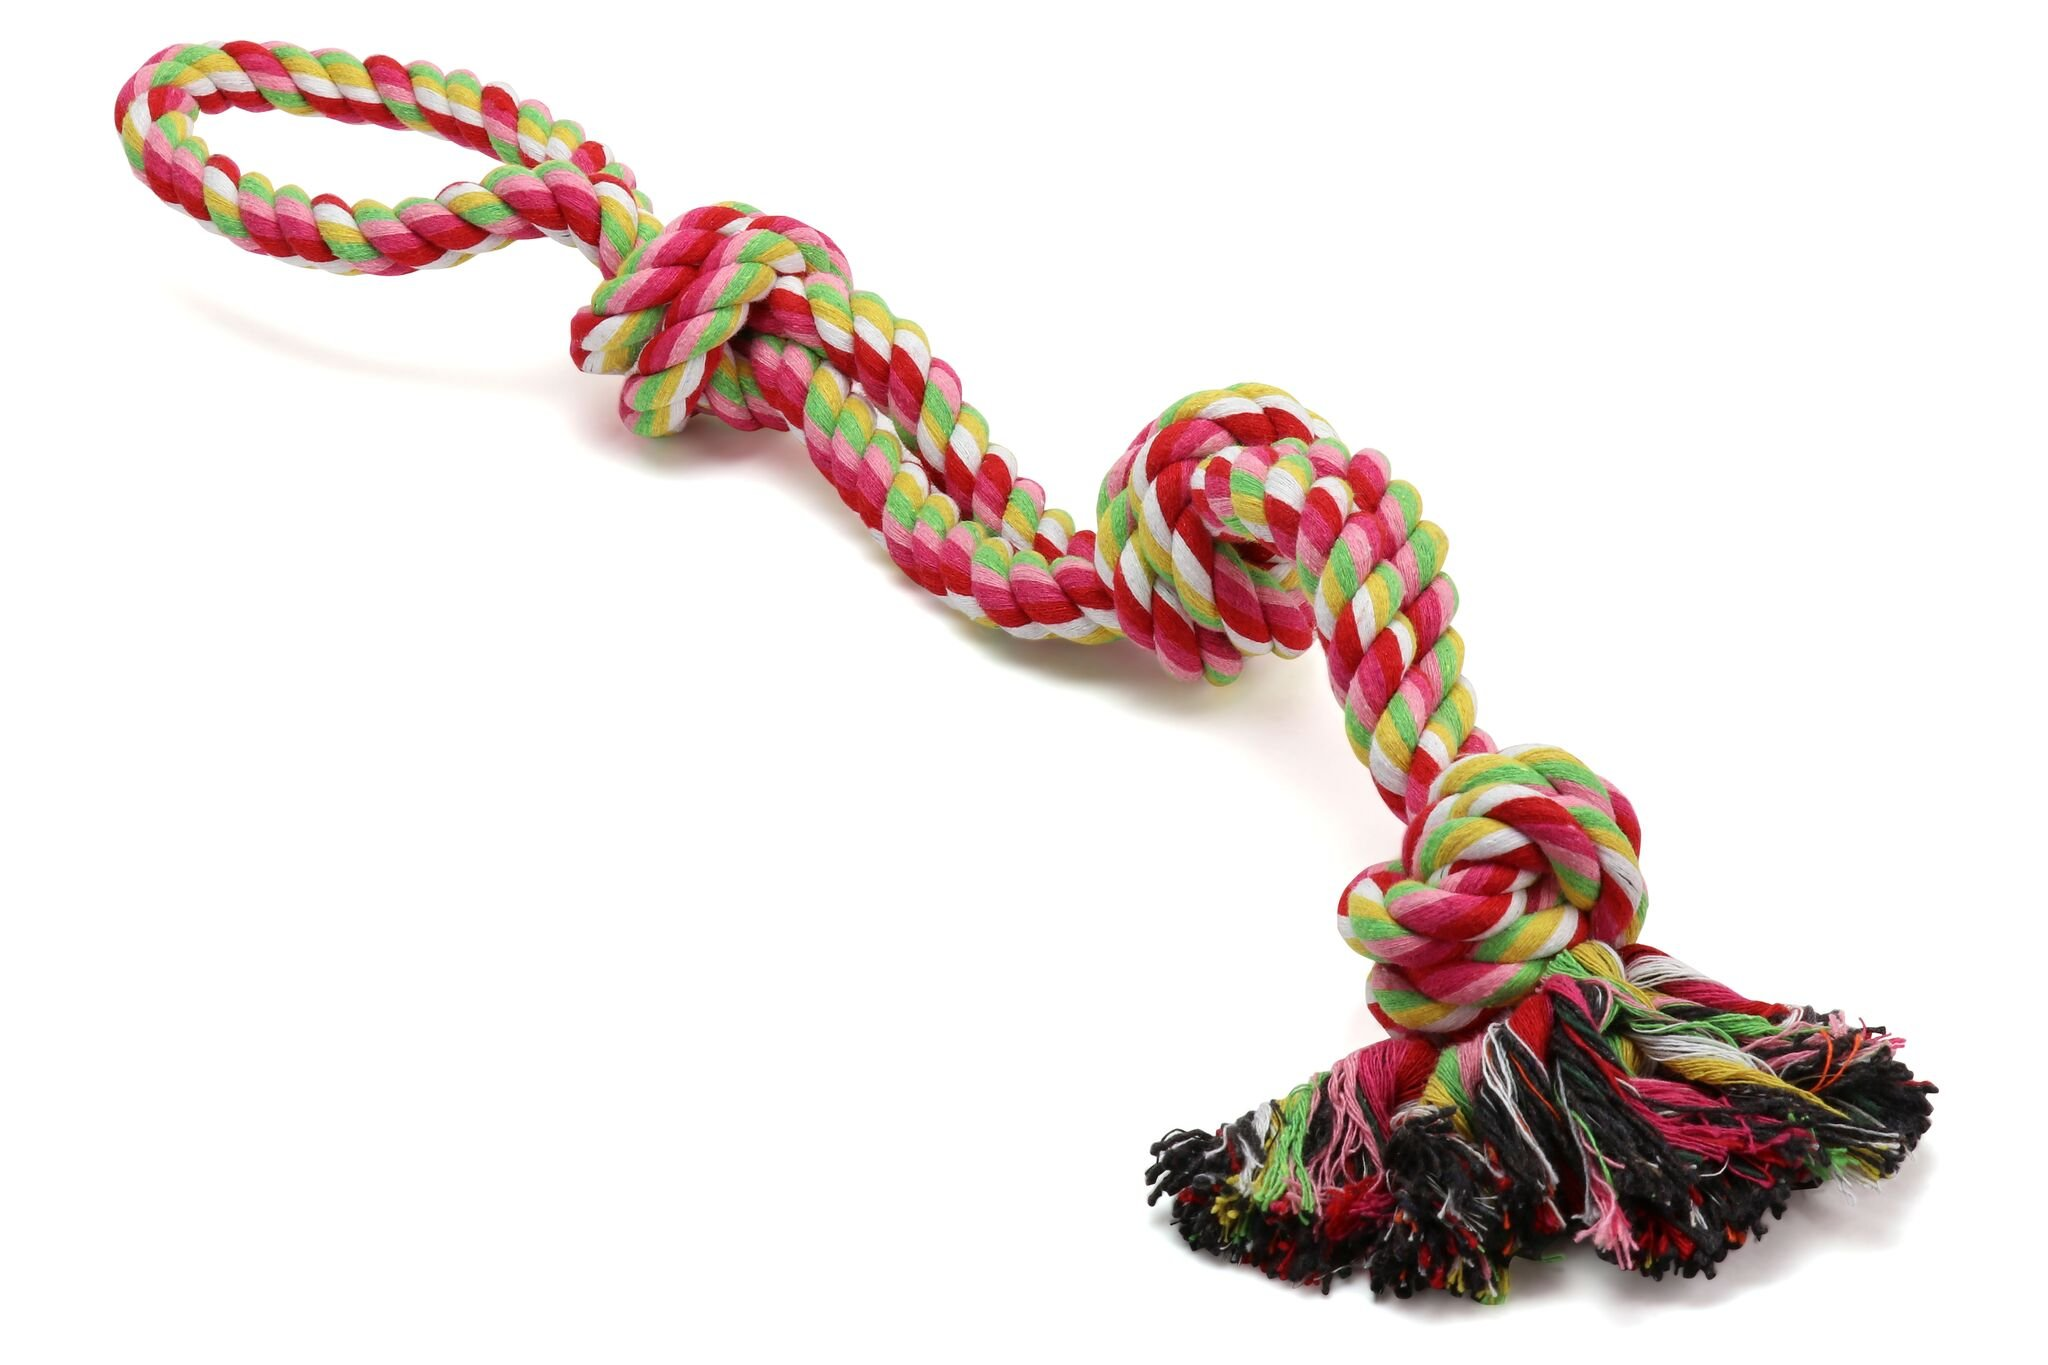 Pacific Pups Products supporting pacificpuprescue.com dog rope toys for aggressive chewers-set of 11 nearly indestructible dog toys-bonus giraffe rope toys-benefits non profit dog rescue. 9